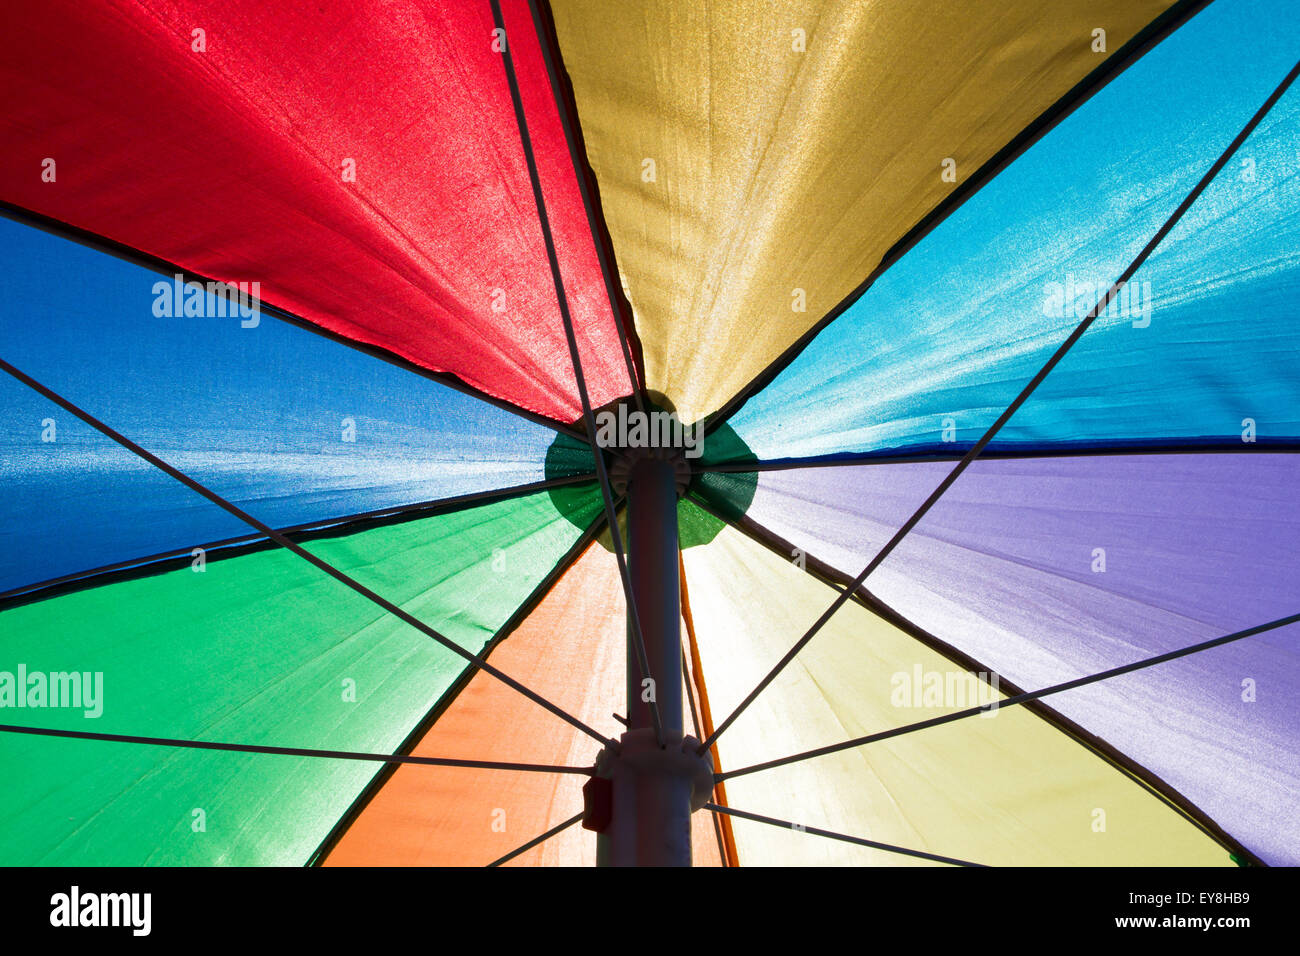 a colorful rainbow colored beach umbrella seen from below Stock Photo